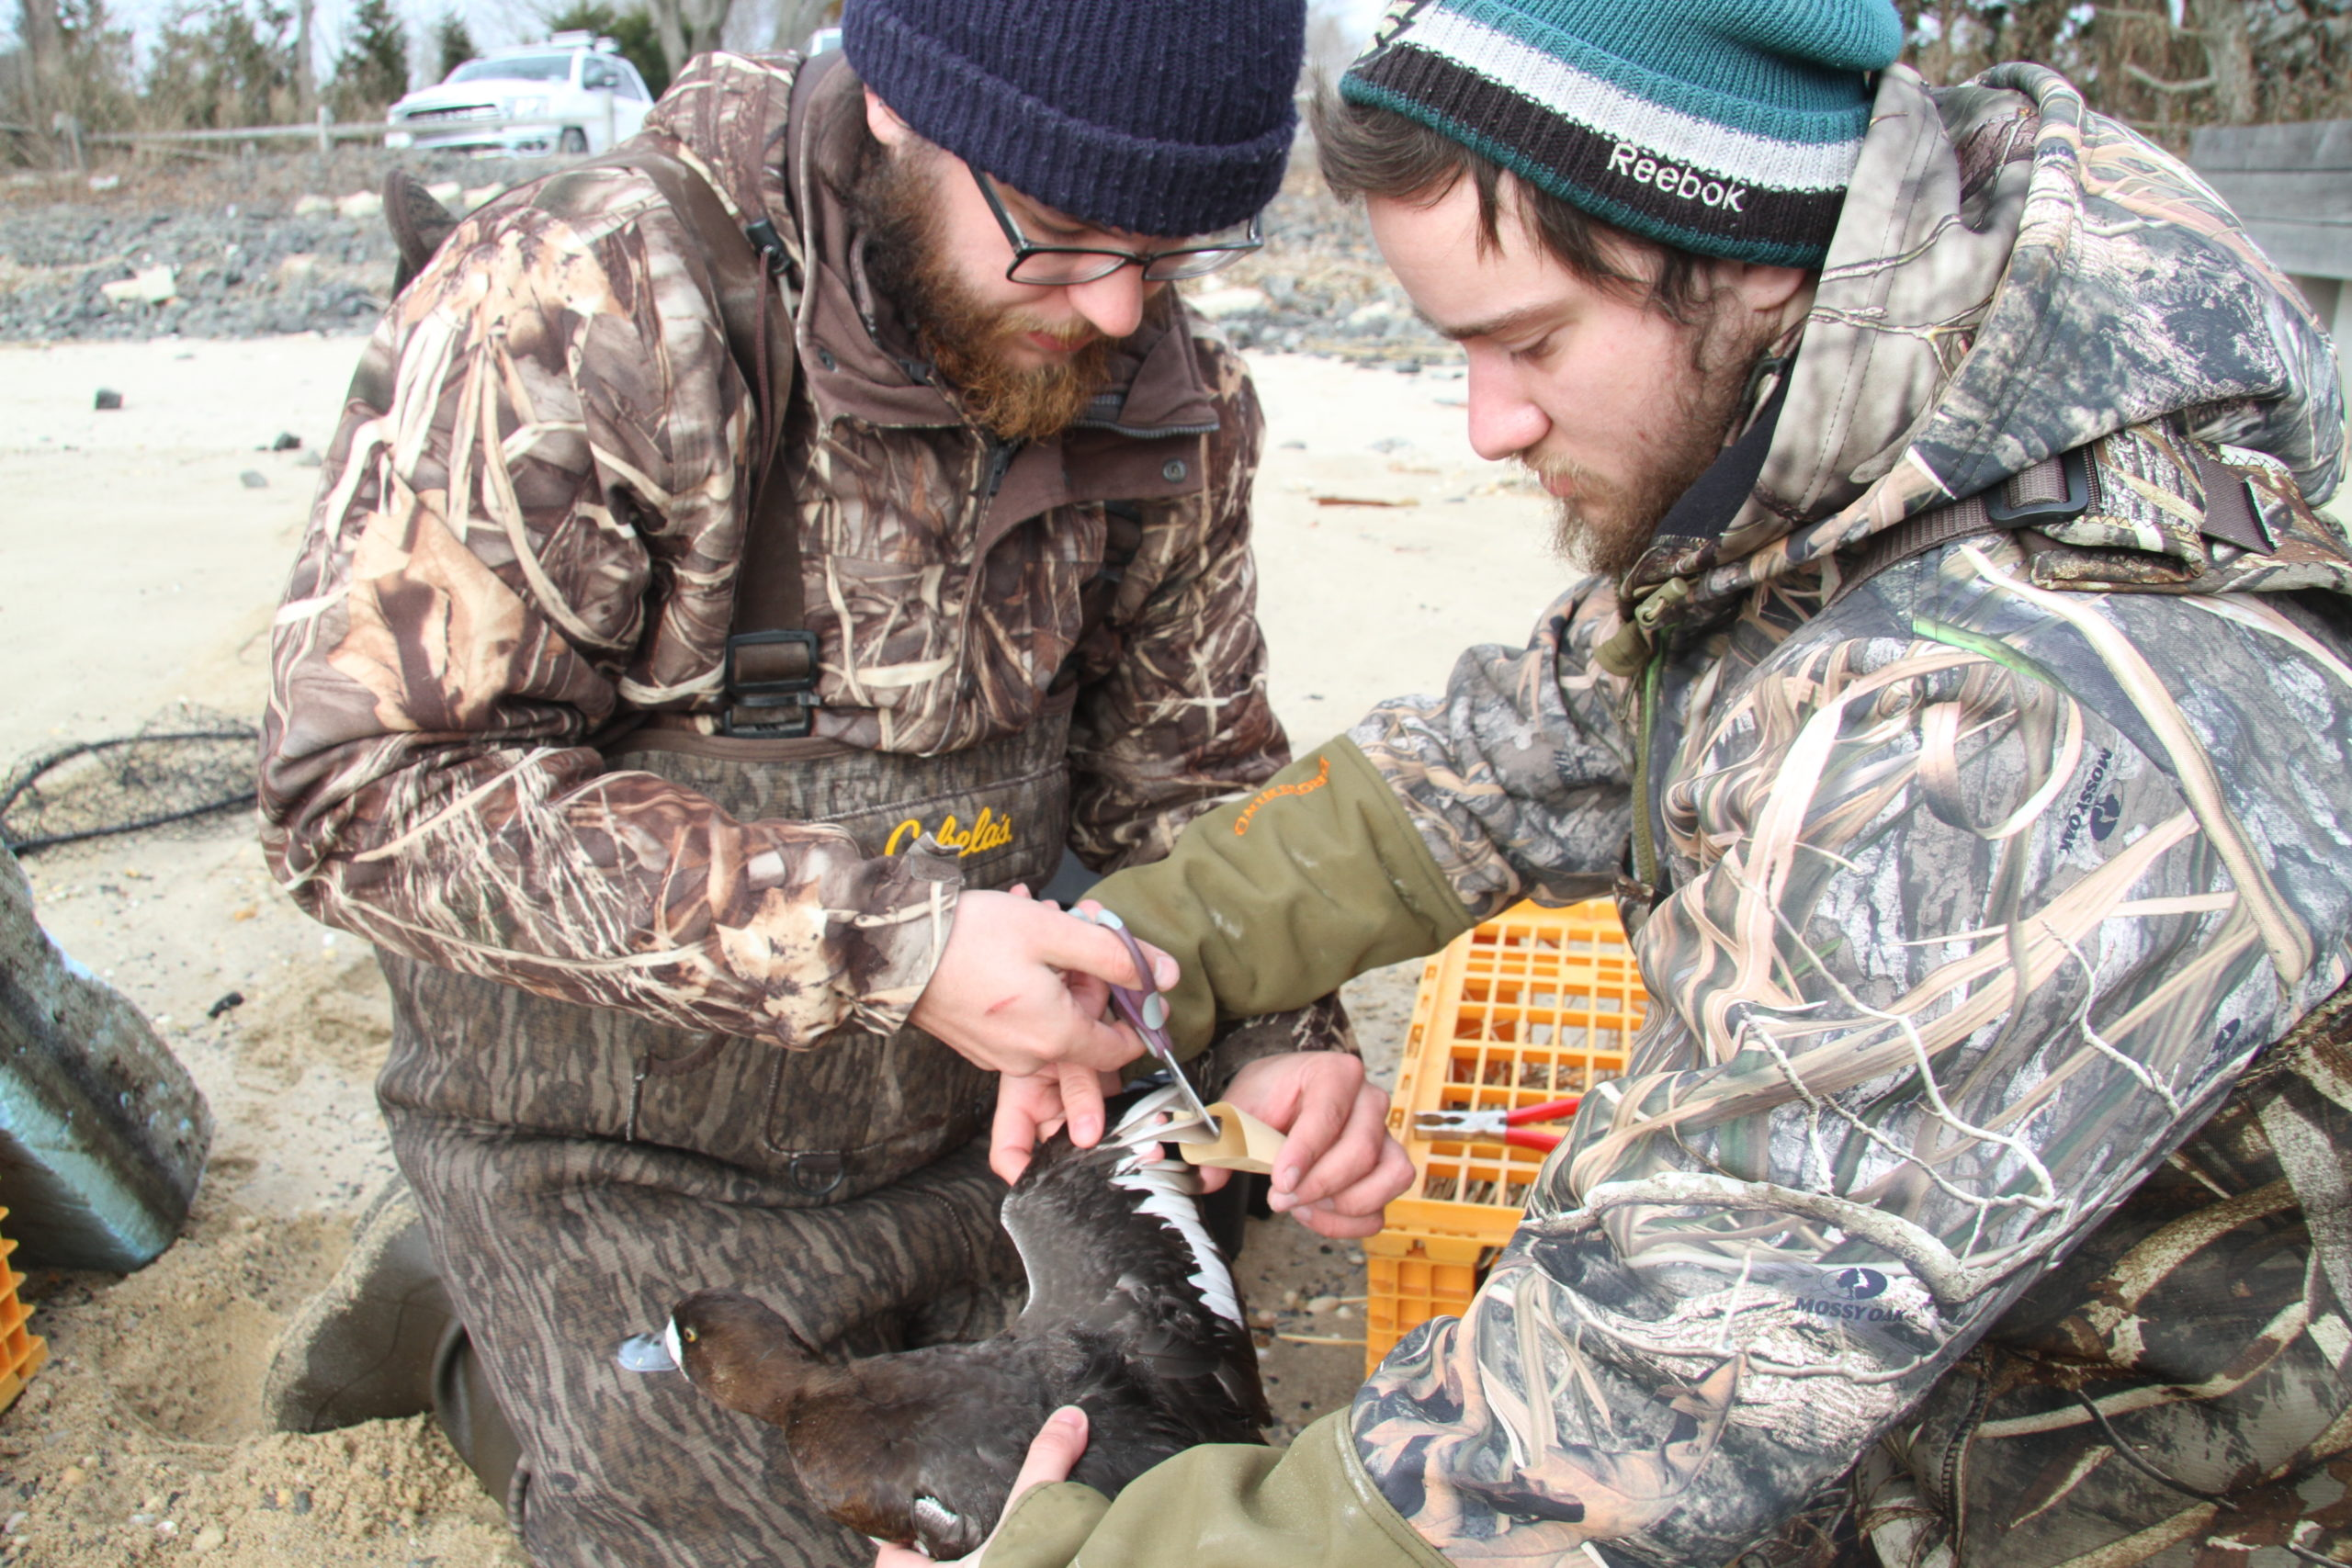 The Long Island Wildfowl Heritage Group and SUNY College of Environmental Science and Forestry are teaming up to band scaup ducks in local bays. MICHAEL WRIGHT